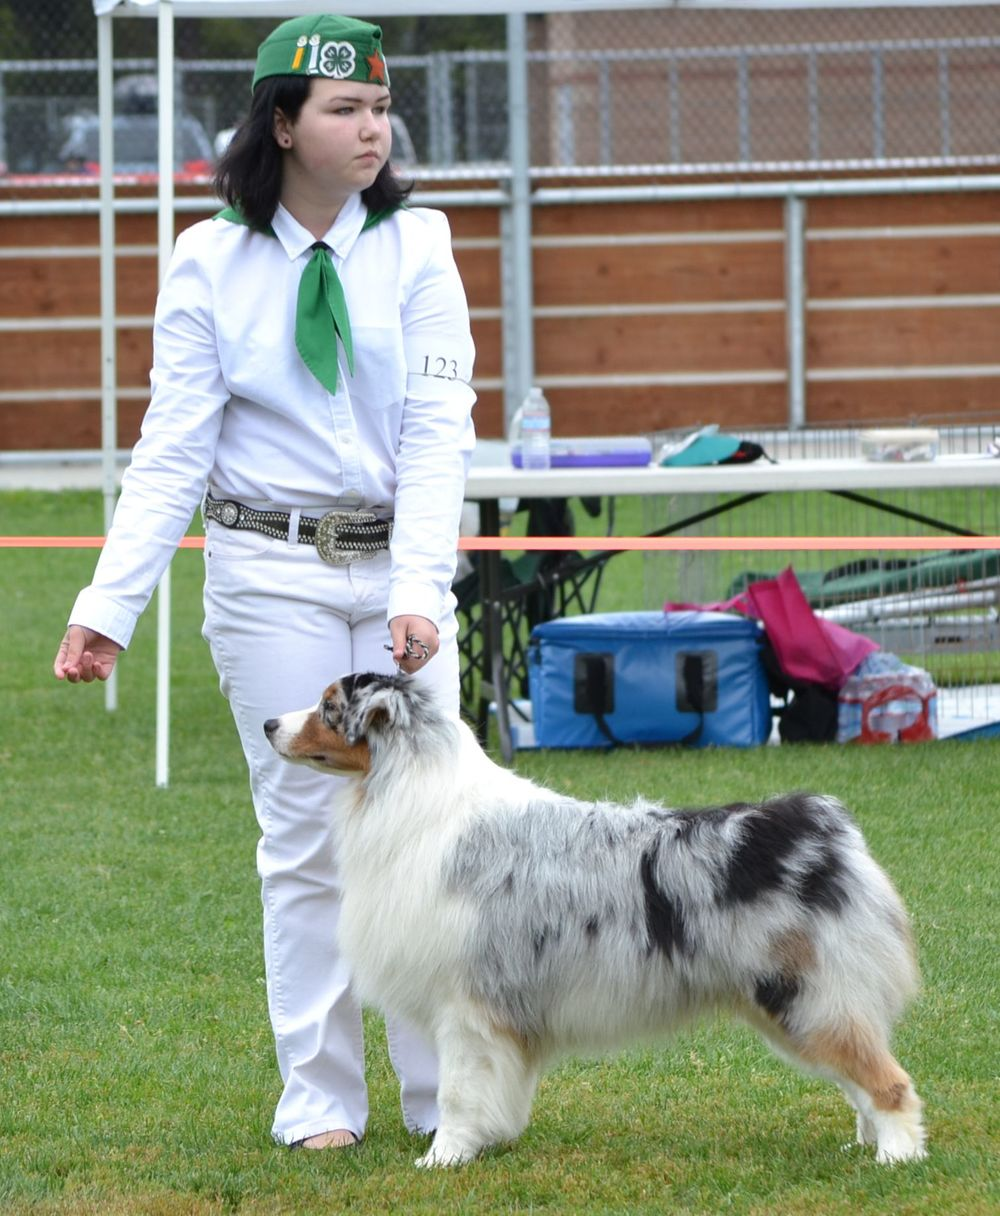 Tyson and I in the 4-H Best Showman class - April 2014